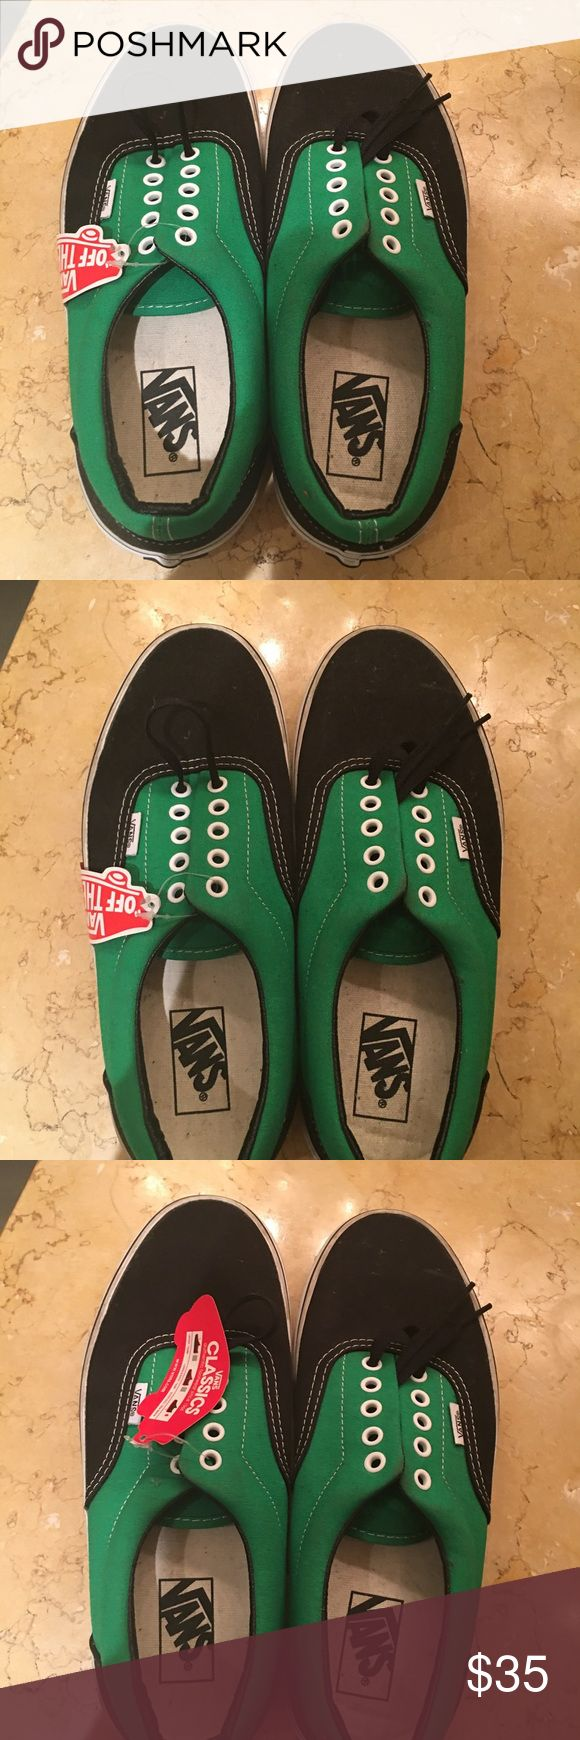 New with tags classic Vans lace ups Never ever worn. Tags still on. Black and green classic Vans lace ups with black shoe laces. Vans Shoes Boat Shoes